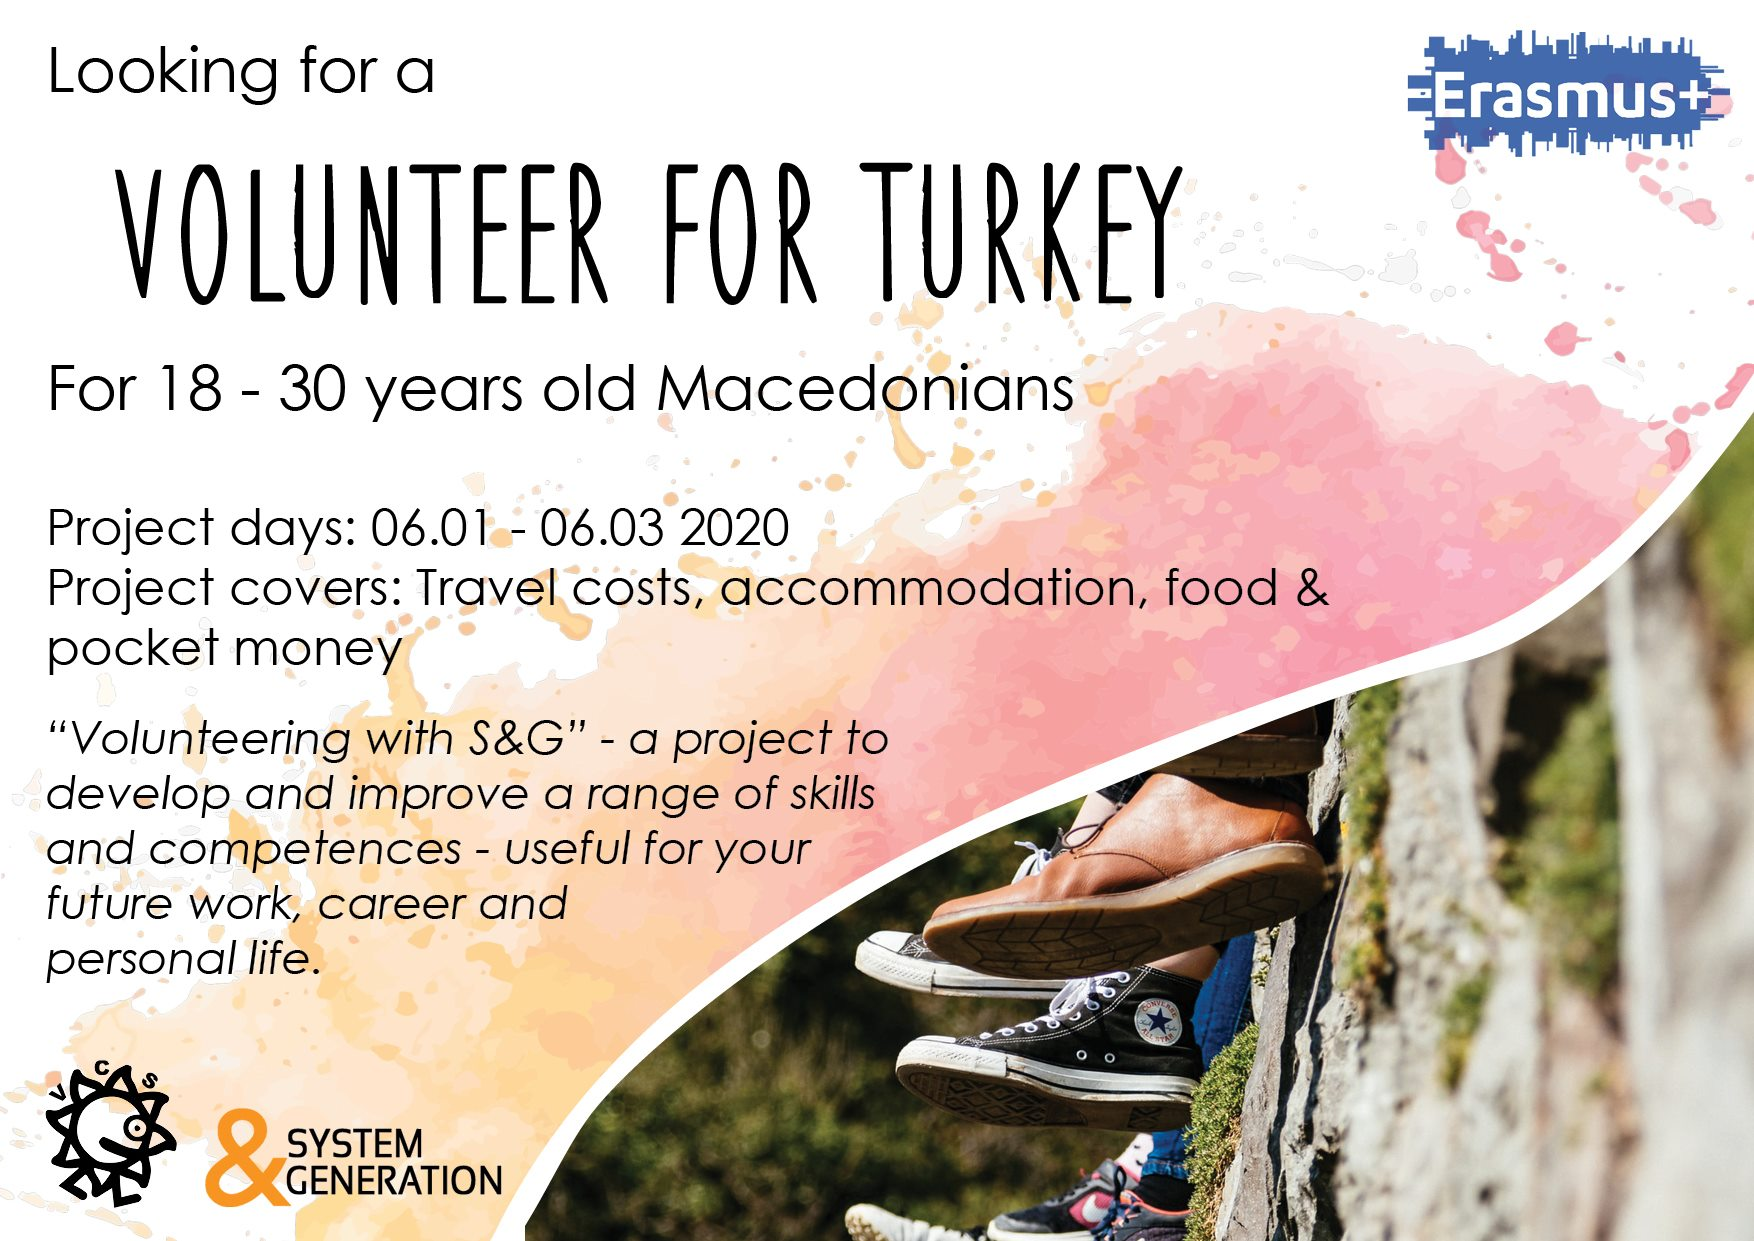 Looking a volunteer for Turkey!